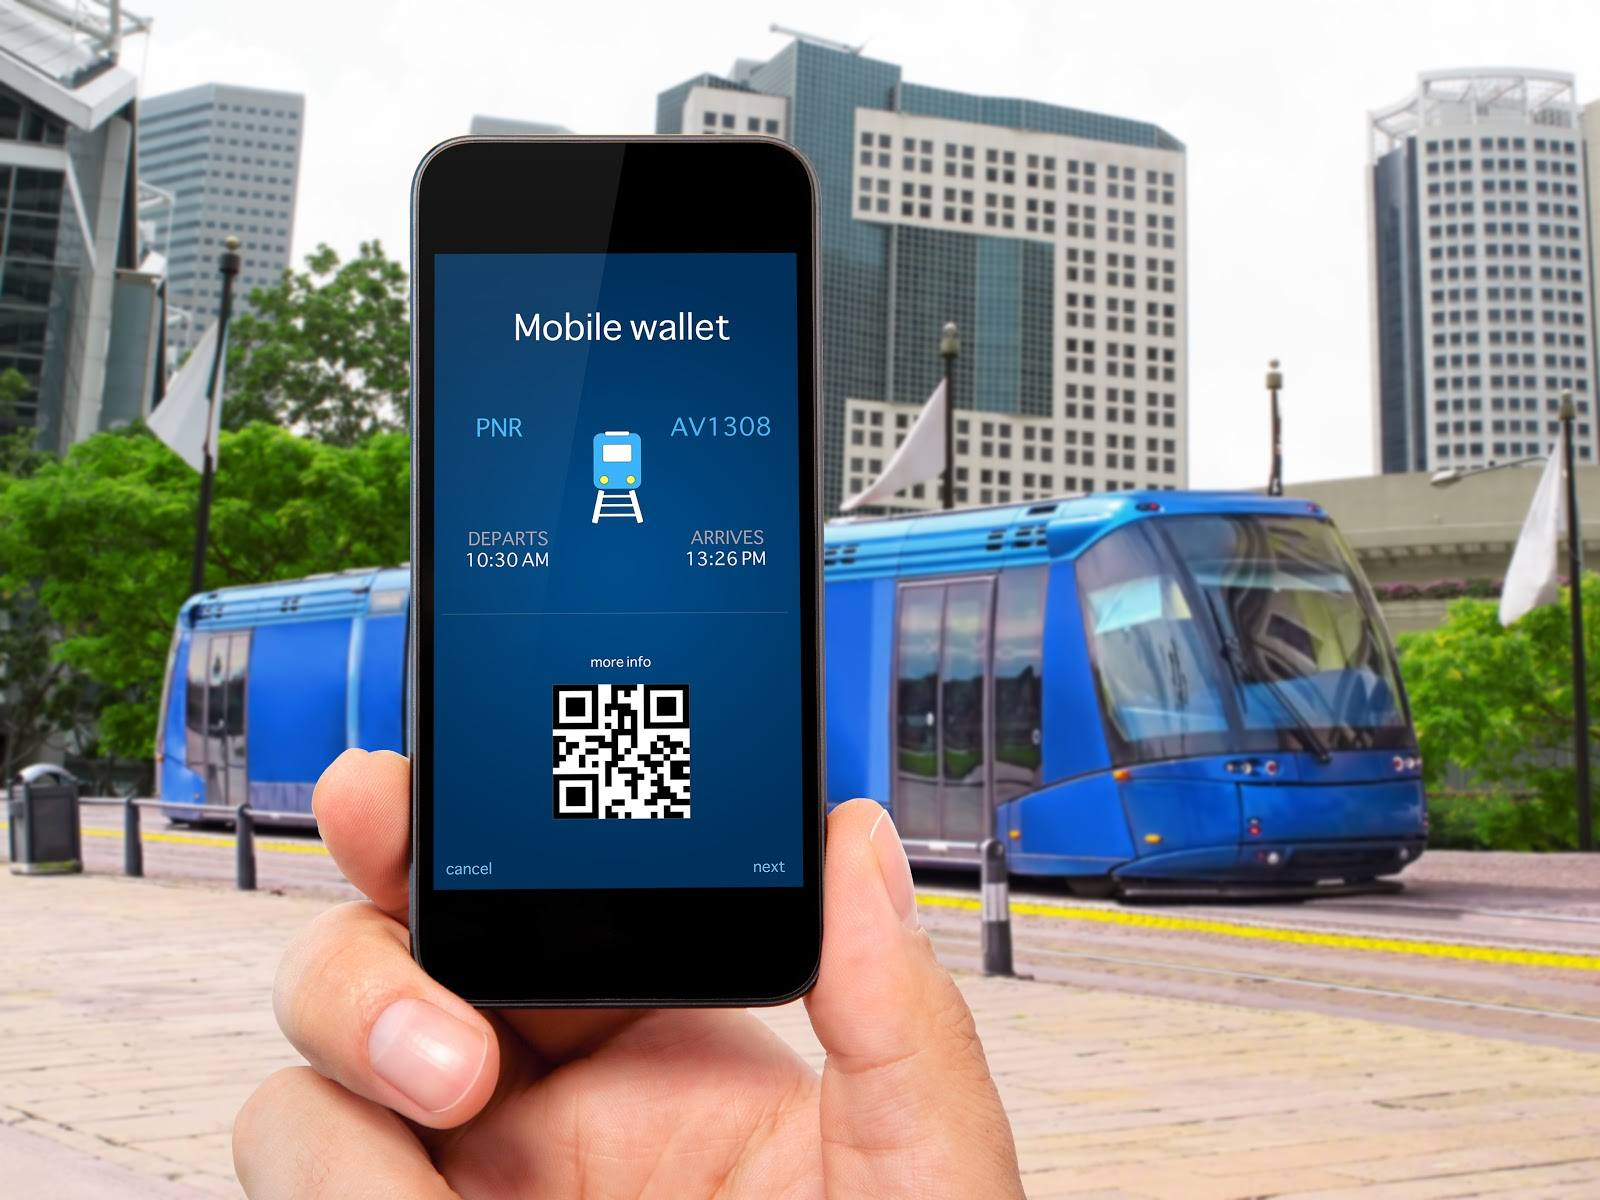 A phone with a QR code bus ticket in front of a blue bus